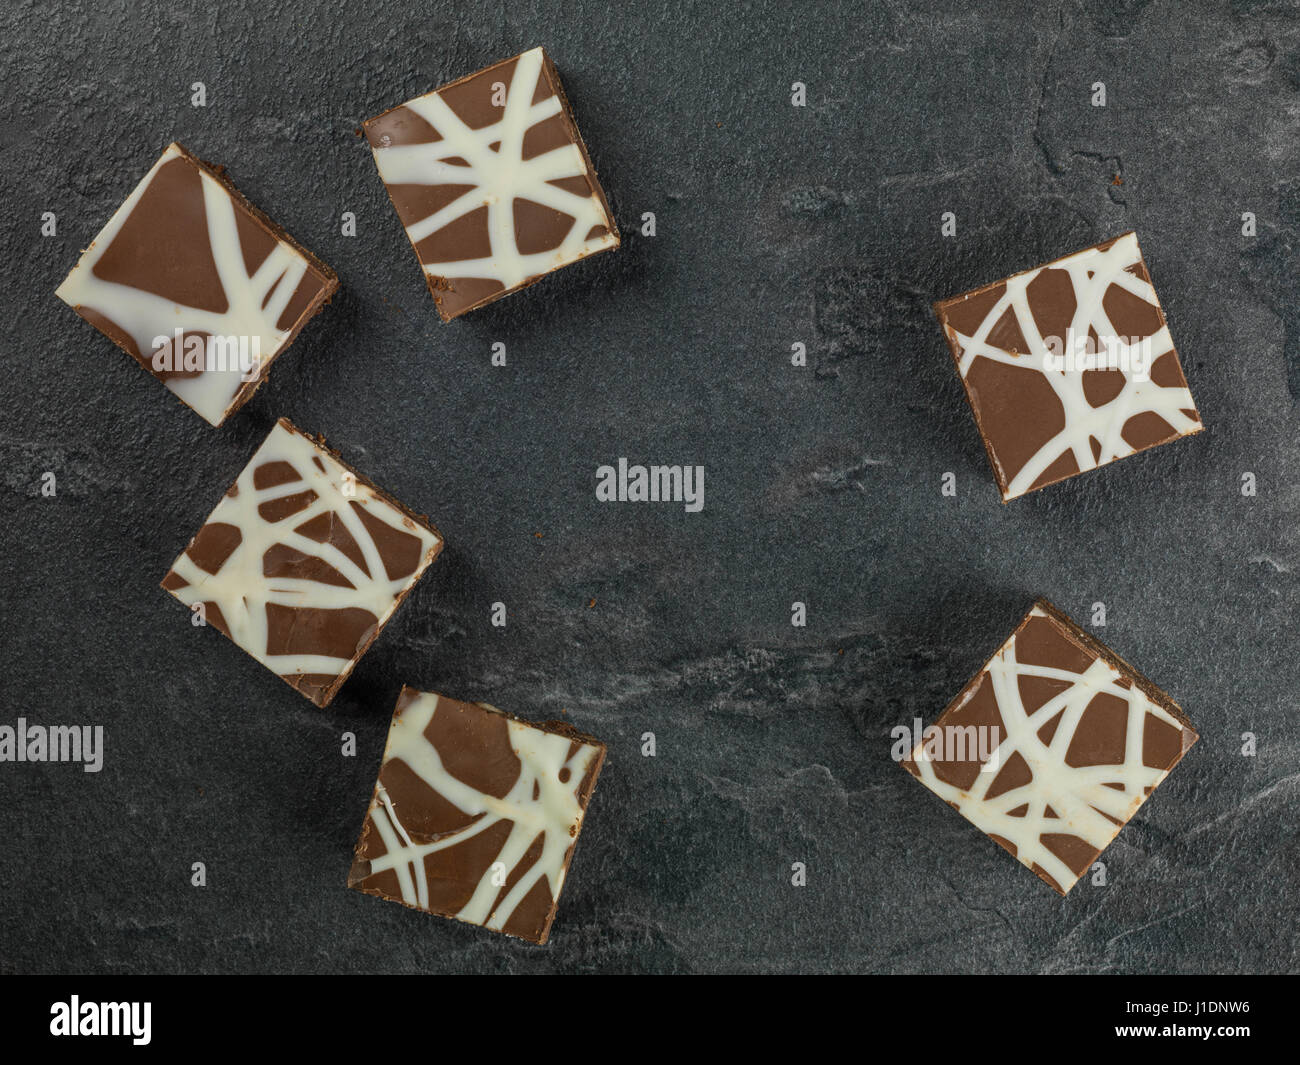 Individual Decorated and Iced Chocolate Tiffin Cakes Against a Black Background - Stock Image